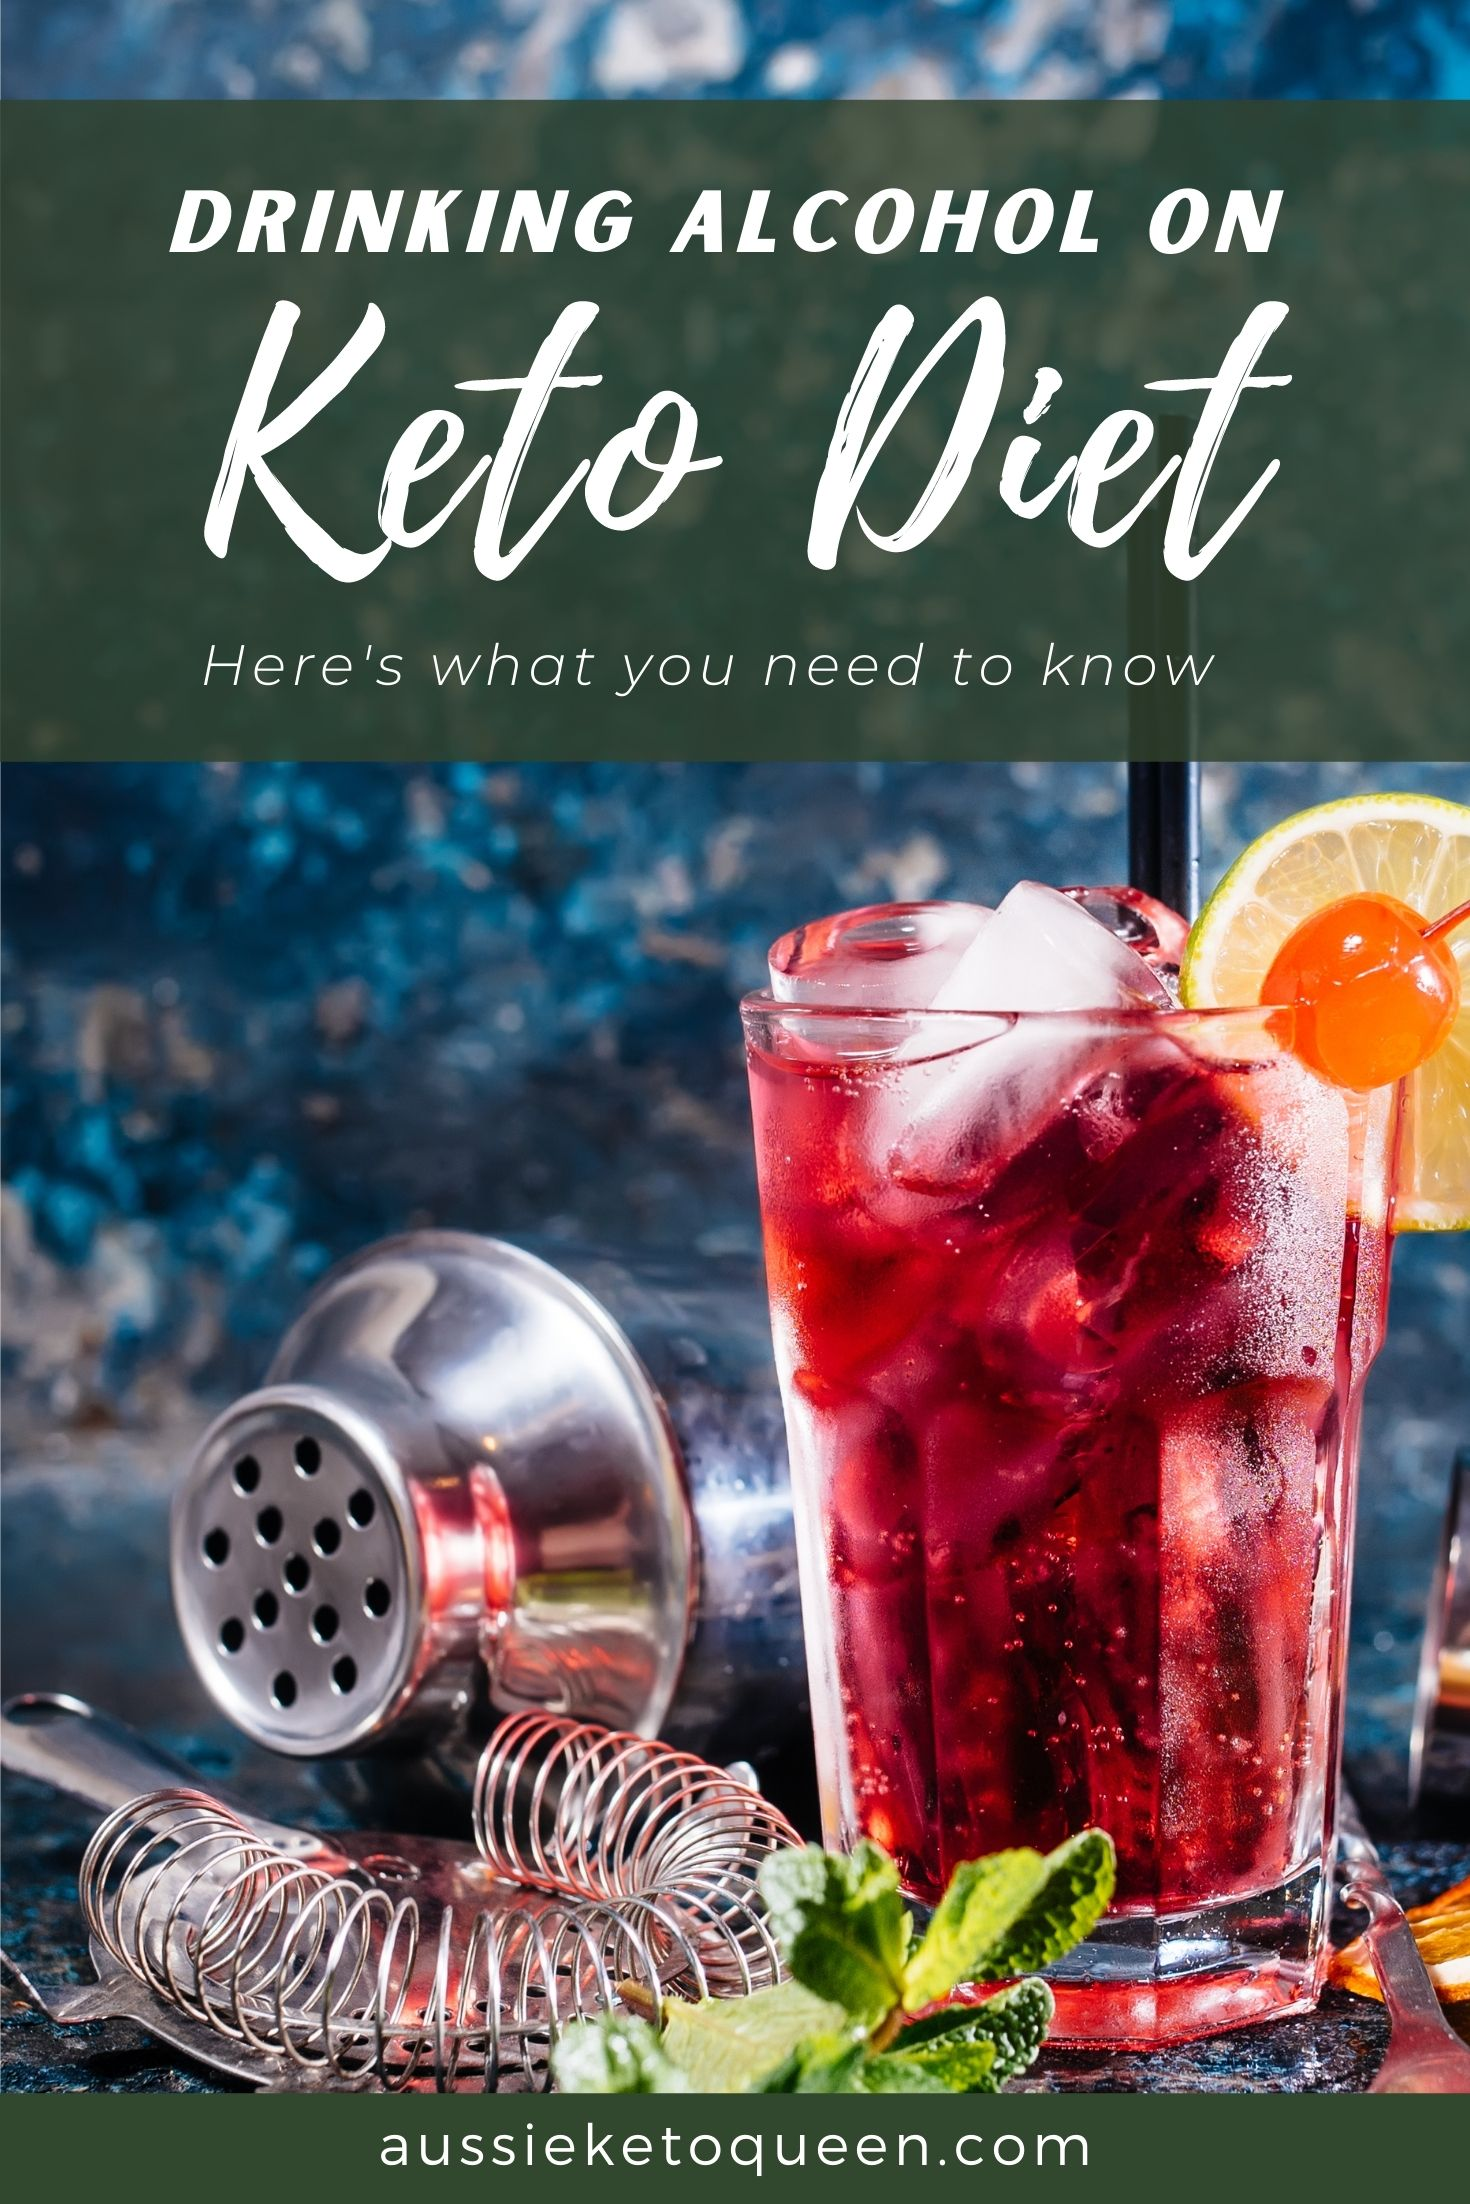 Can you drink Alcohol on Keto diet?